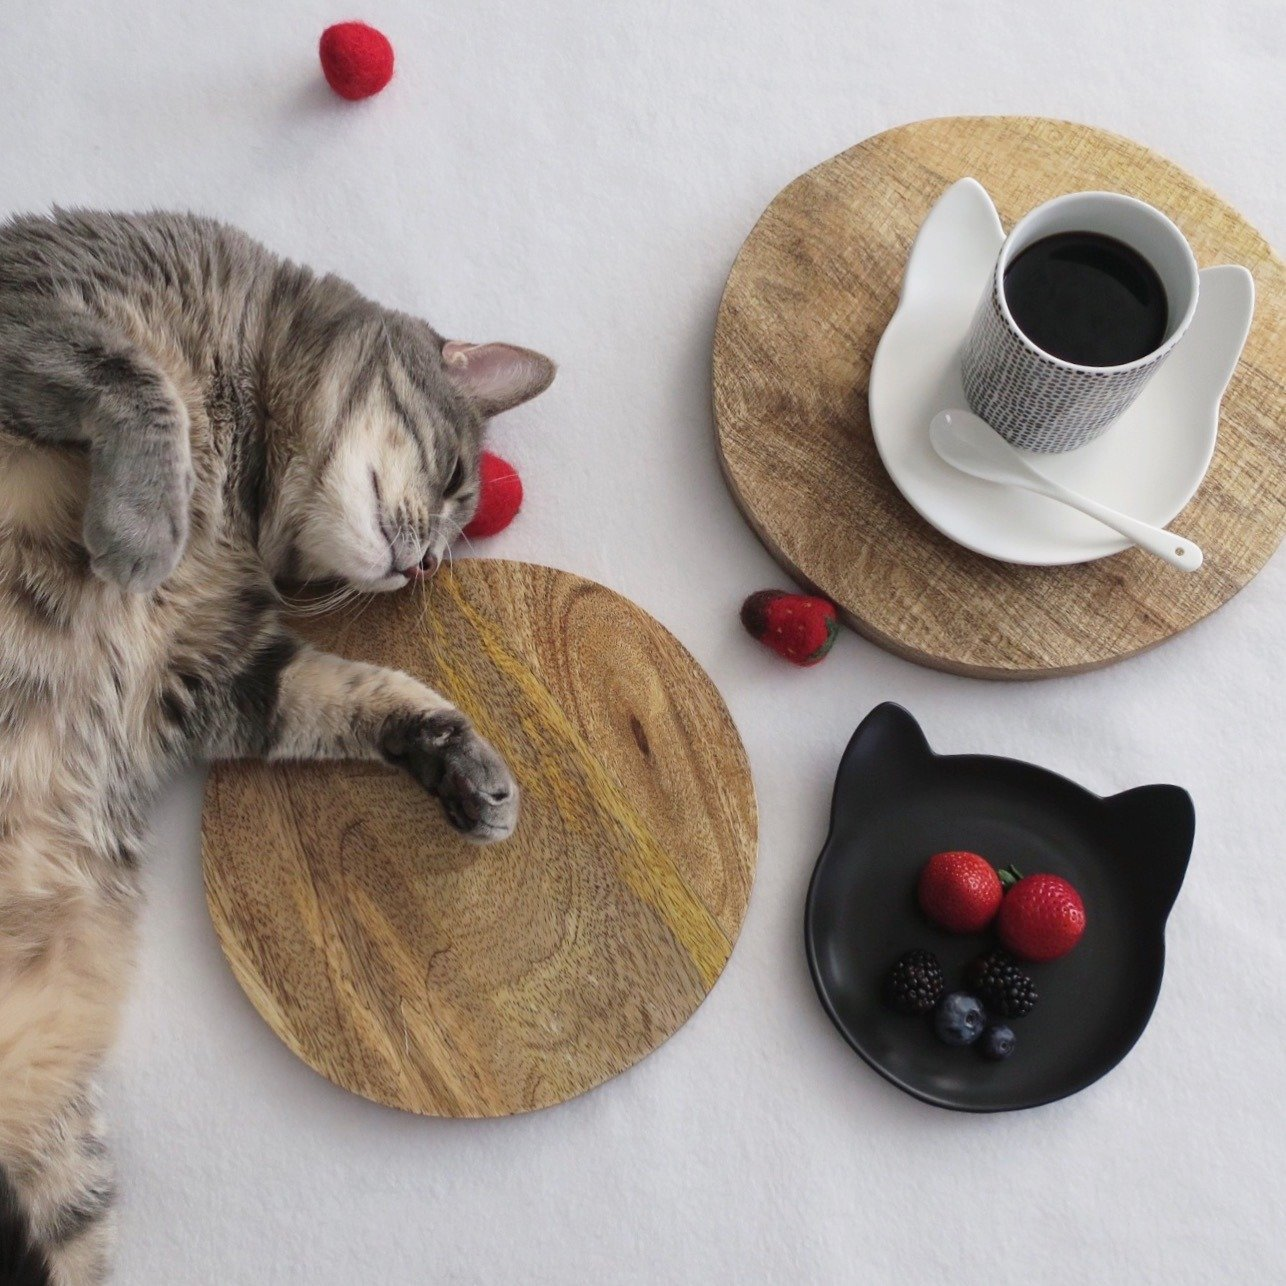 2 Ceramic Hand Crafted Bowls for Pet by ViviPet (Kitty Plate Set)